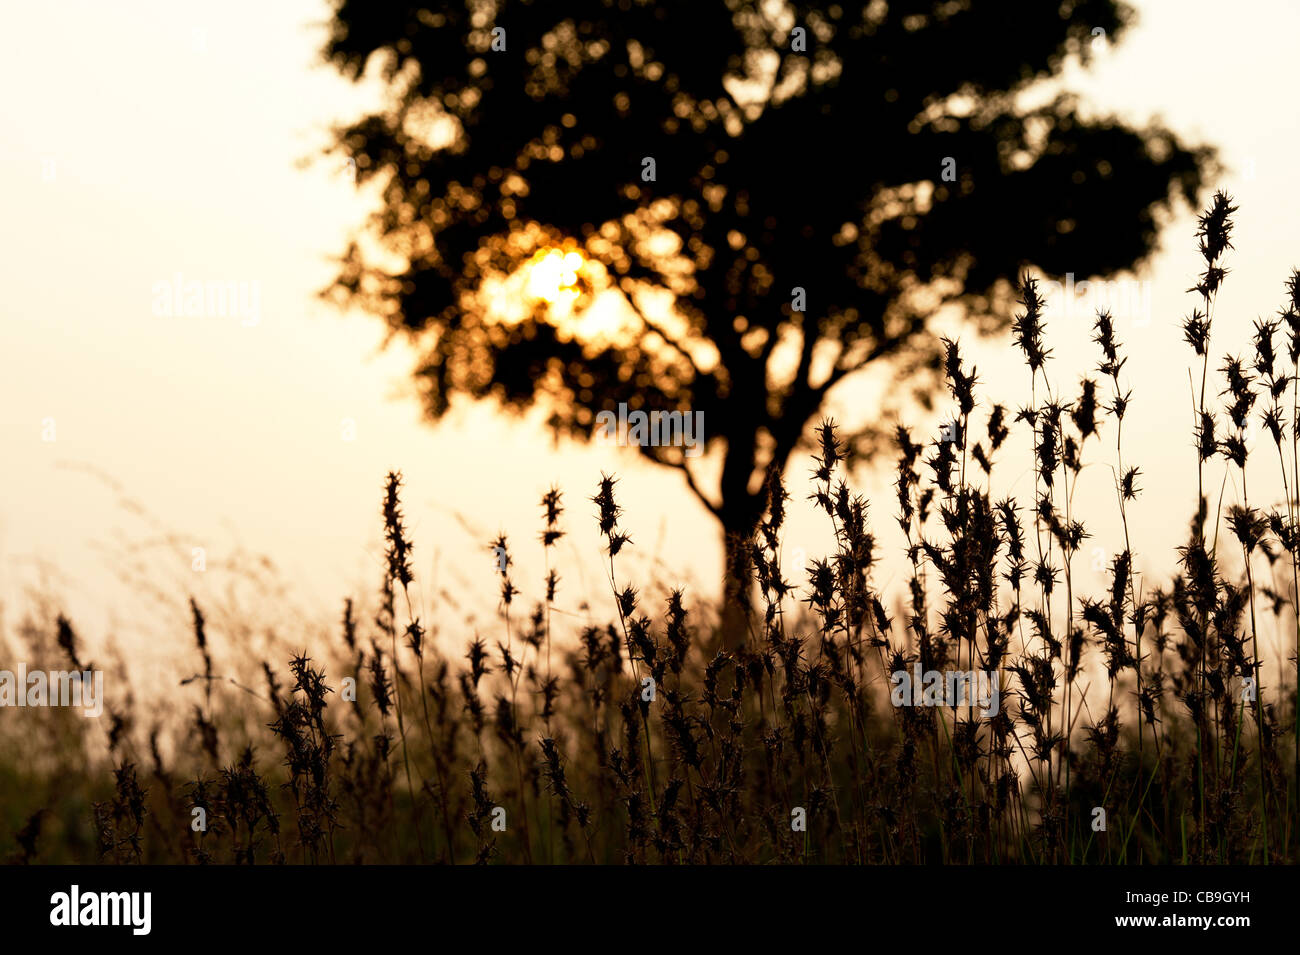 Indian tree and grasses in the countryside at sunset. Andhra Pradesh, India. Silhouette - Stock Image